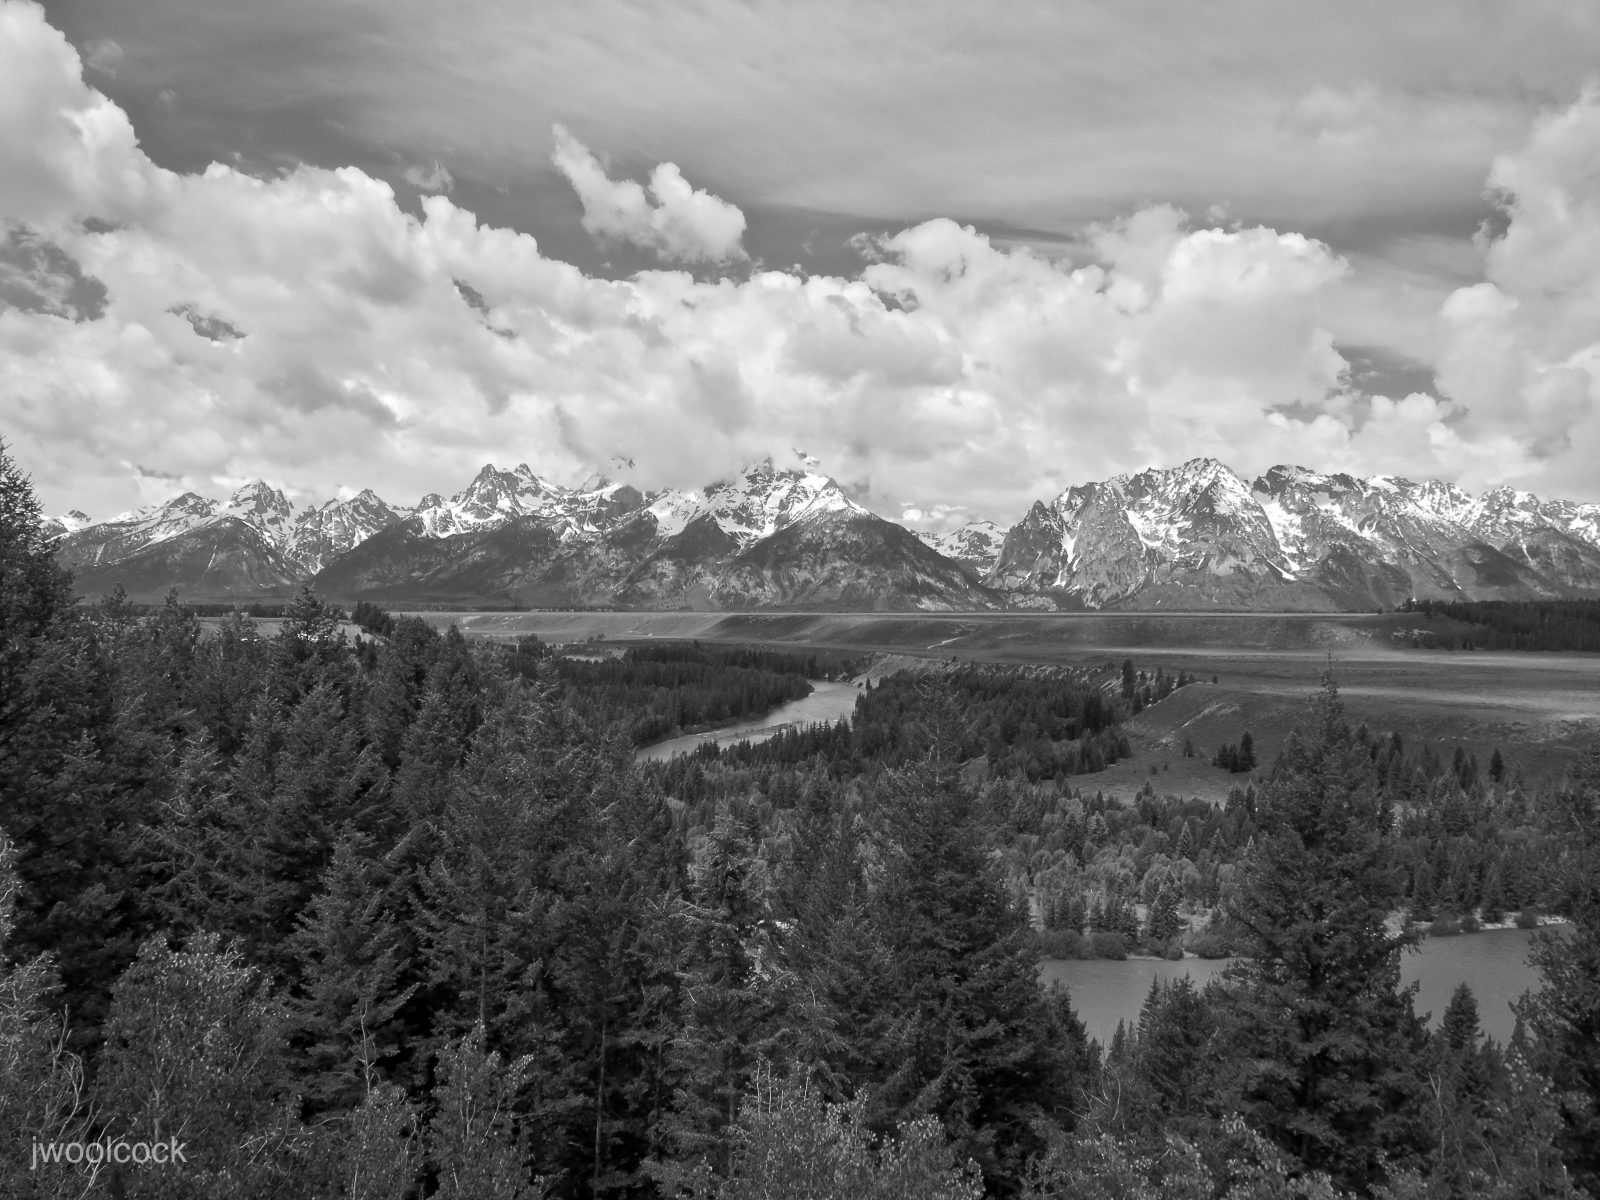 Snake River Overlook/Ode to Ansel